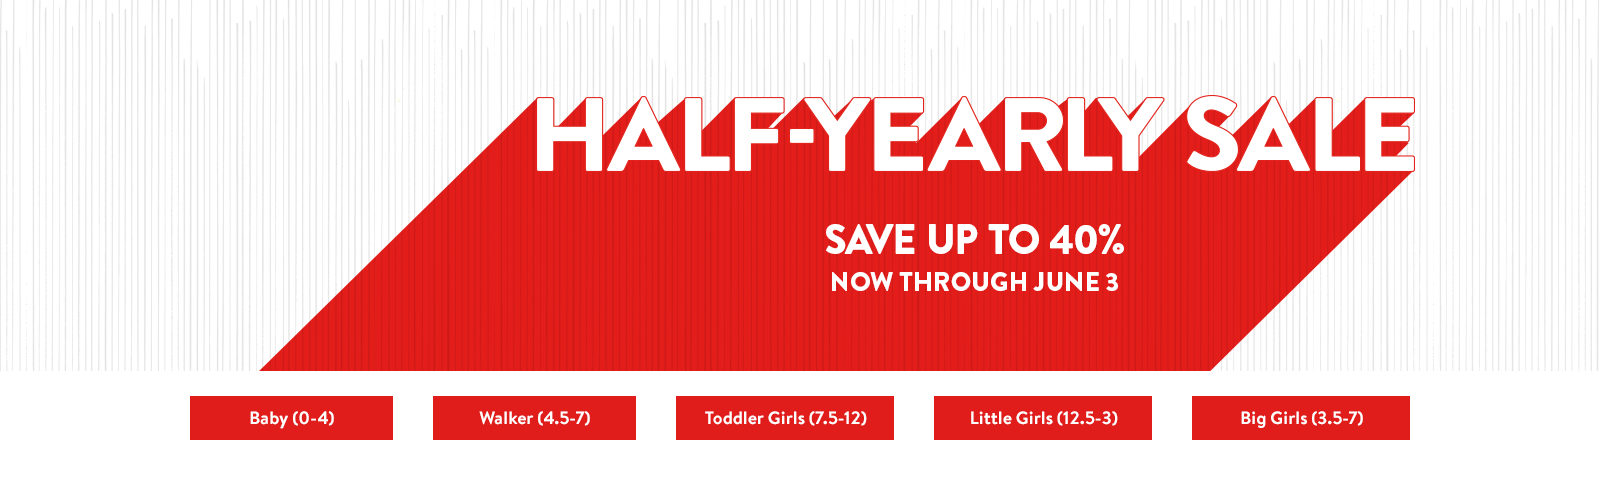 Half-Yearly Sale. Save up to 40% through June 3. Shop girls' sale shoes by size.